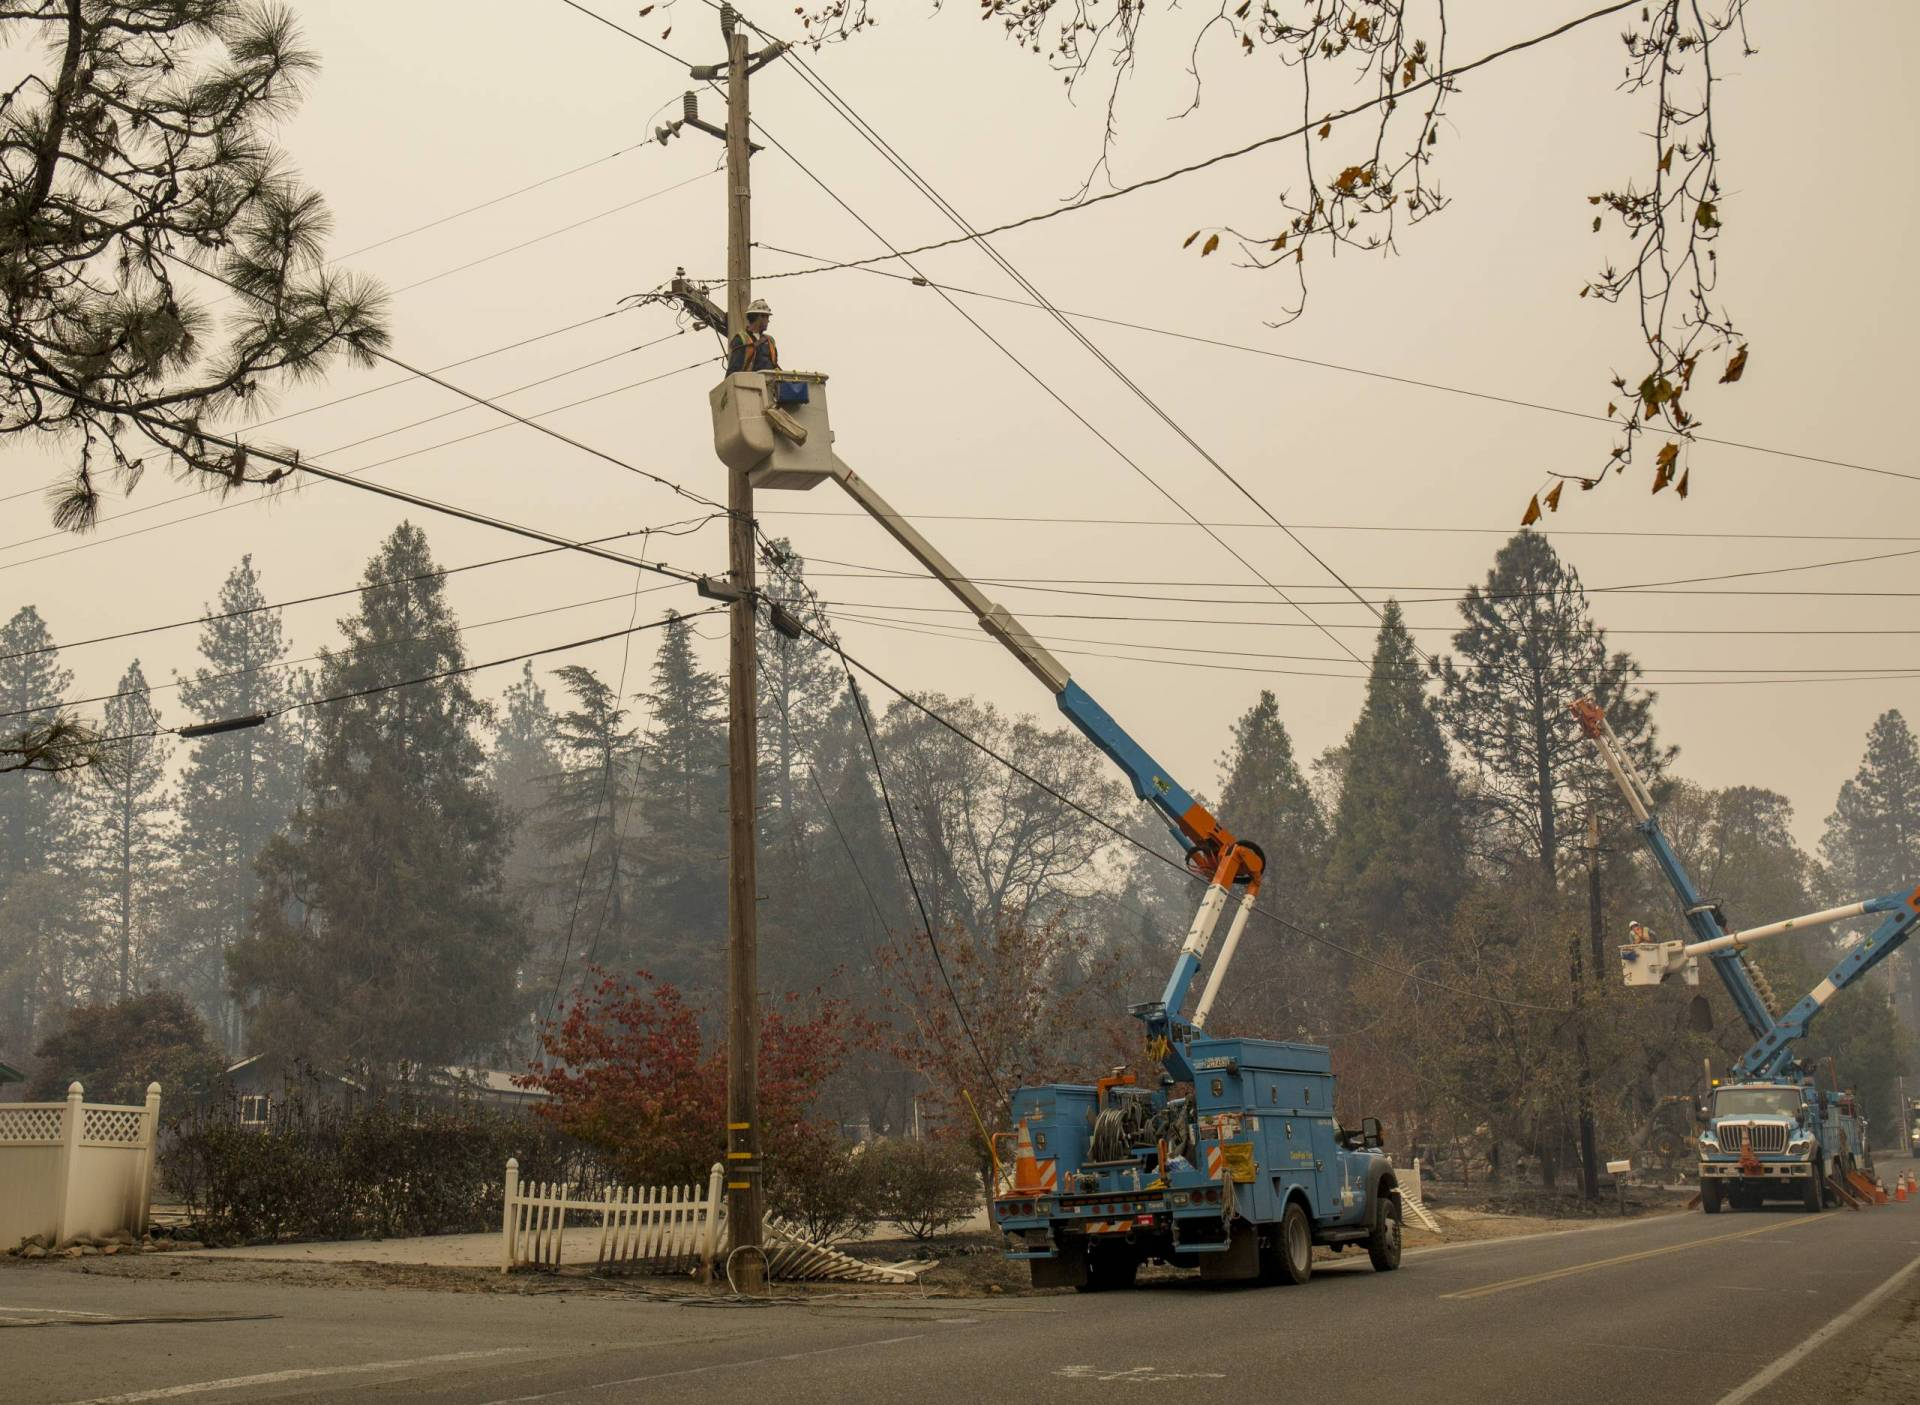 PG&E workers cut damaged power lines near Paradise on Nov. 13, 2018, five days after a PG&E transmission line sparked the Camp Fire, the deadliest and most destructive wildfire in modern California history.